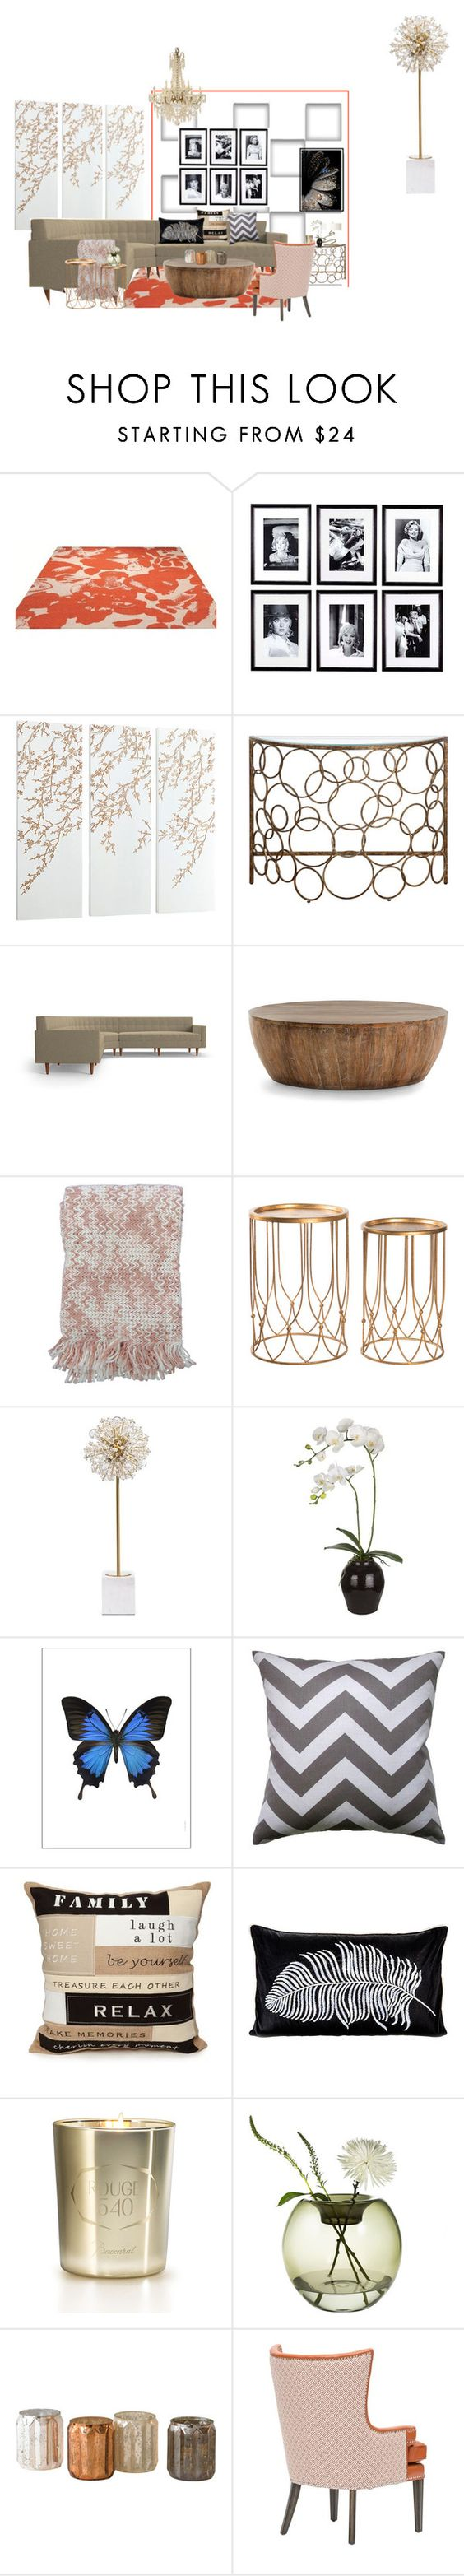 """stylish space"" by lindagama on Polyvore featuring interior, interiors, interior design, home, home decor, interior decorating, ESPRIT, Eichholtz, Cyan Design and Arteriors"